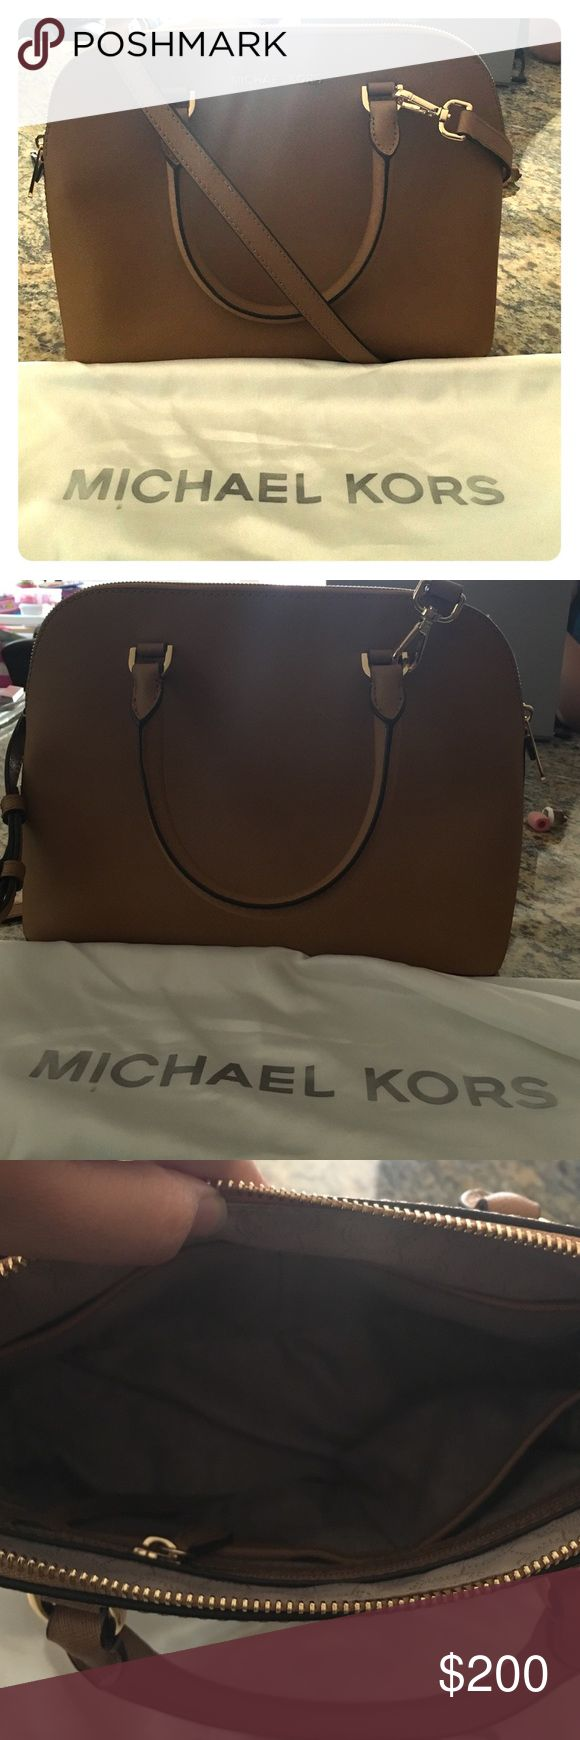 Michael Kors Cindy satchel in peanut Brand new without tag. Never used. Falls on hip. Michael Kors Bags Satchels